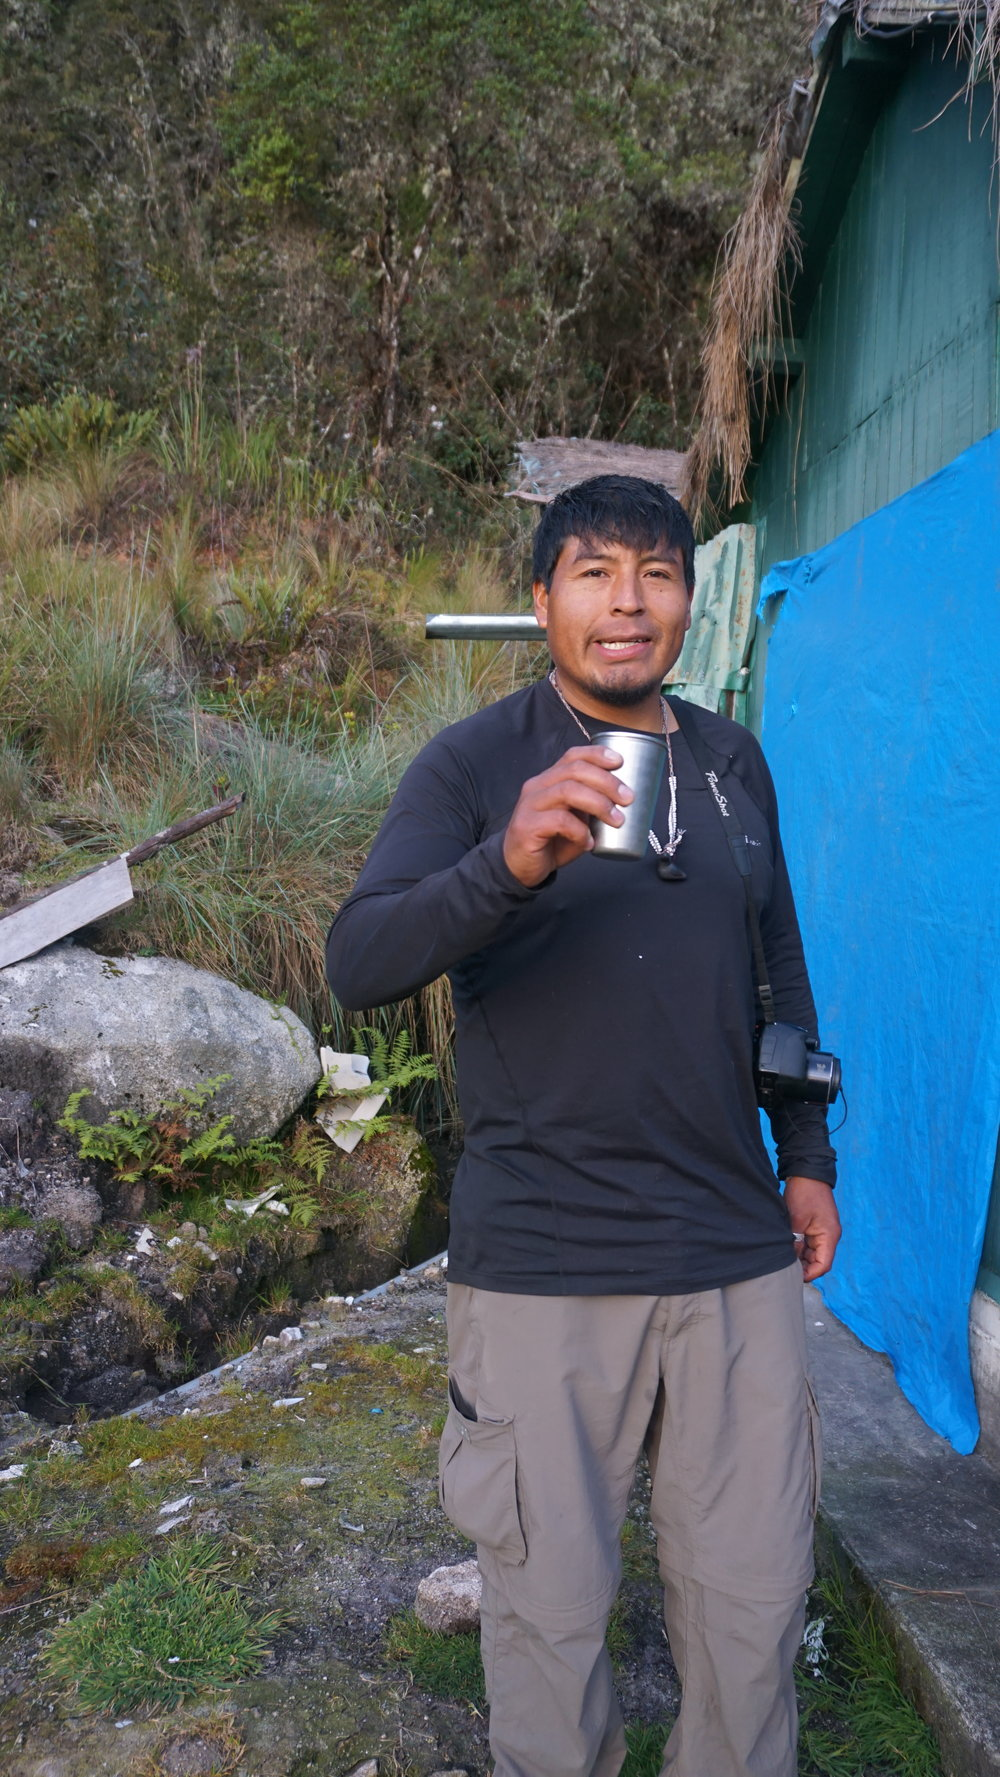 Our guide and friend, Reynaldo